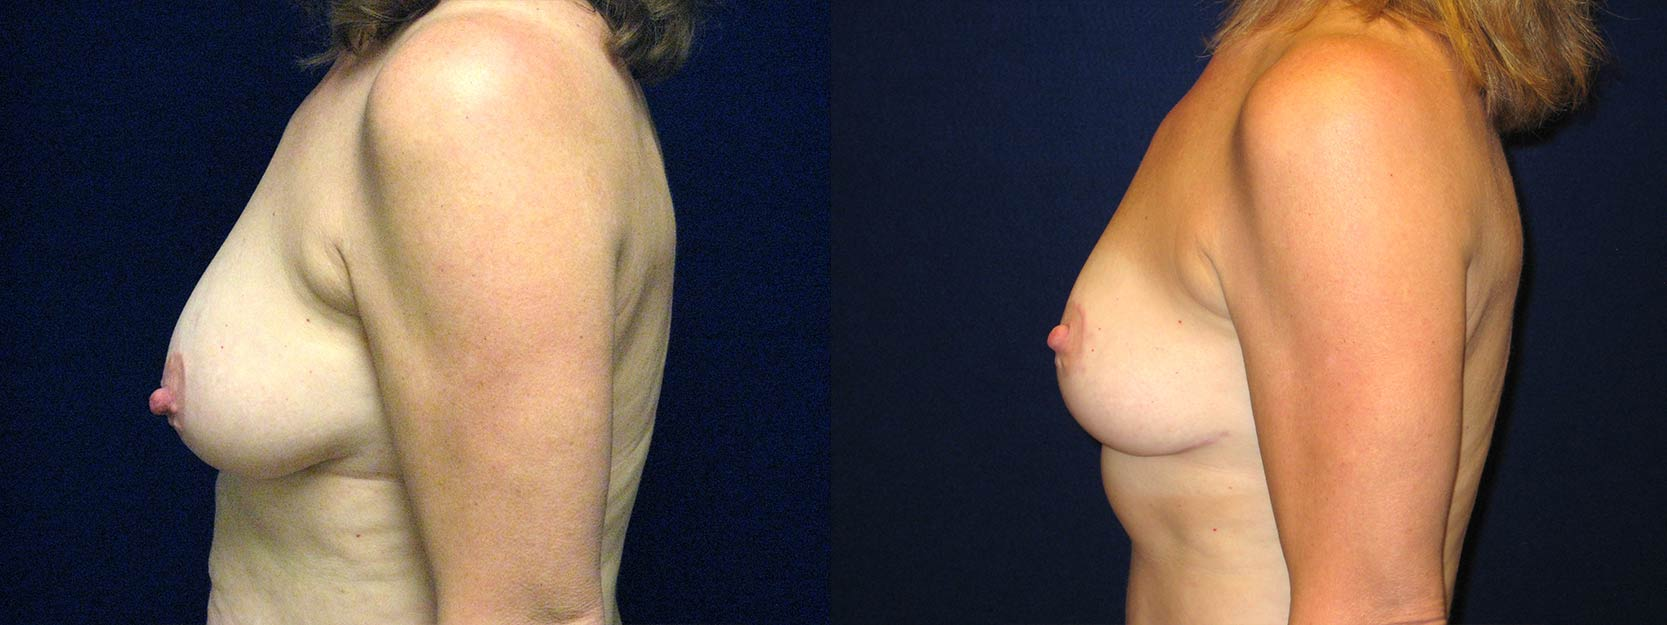 Left Profile View - Breast Lift After Pregnancy